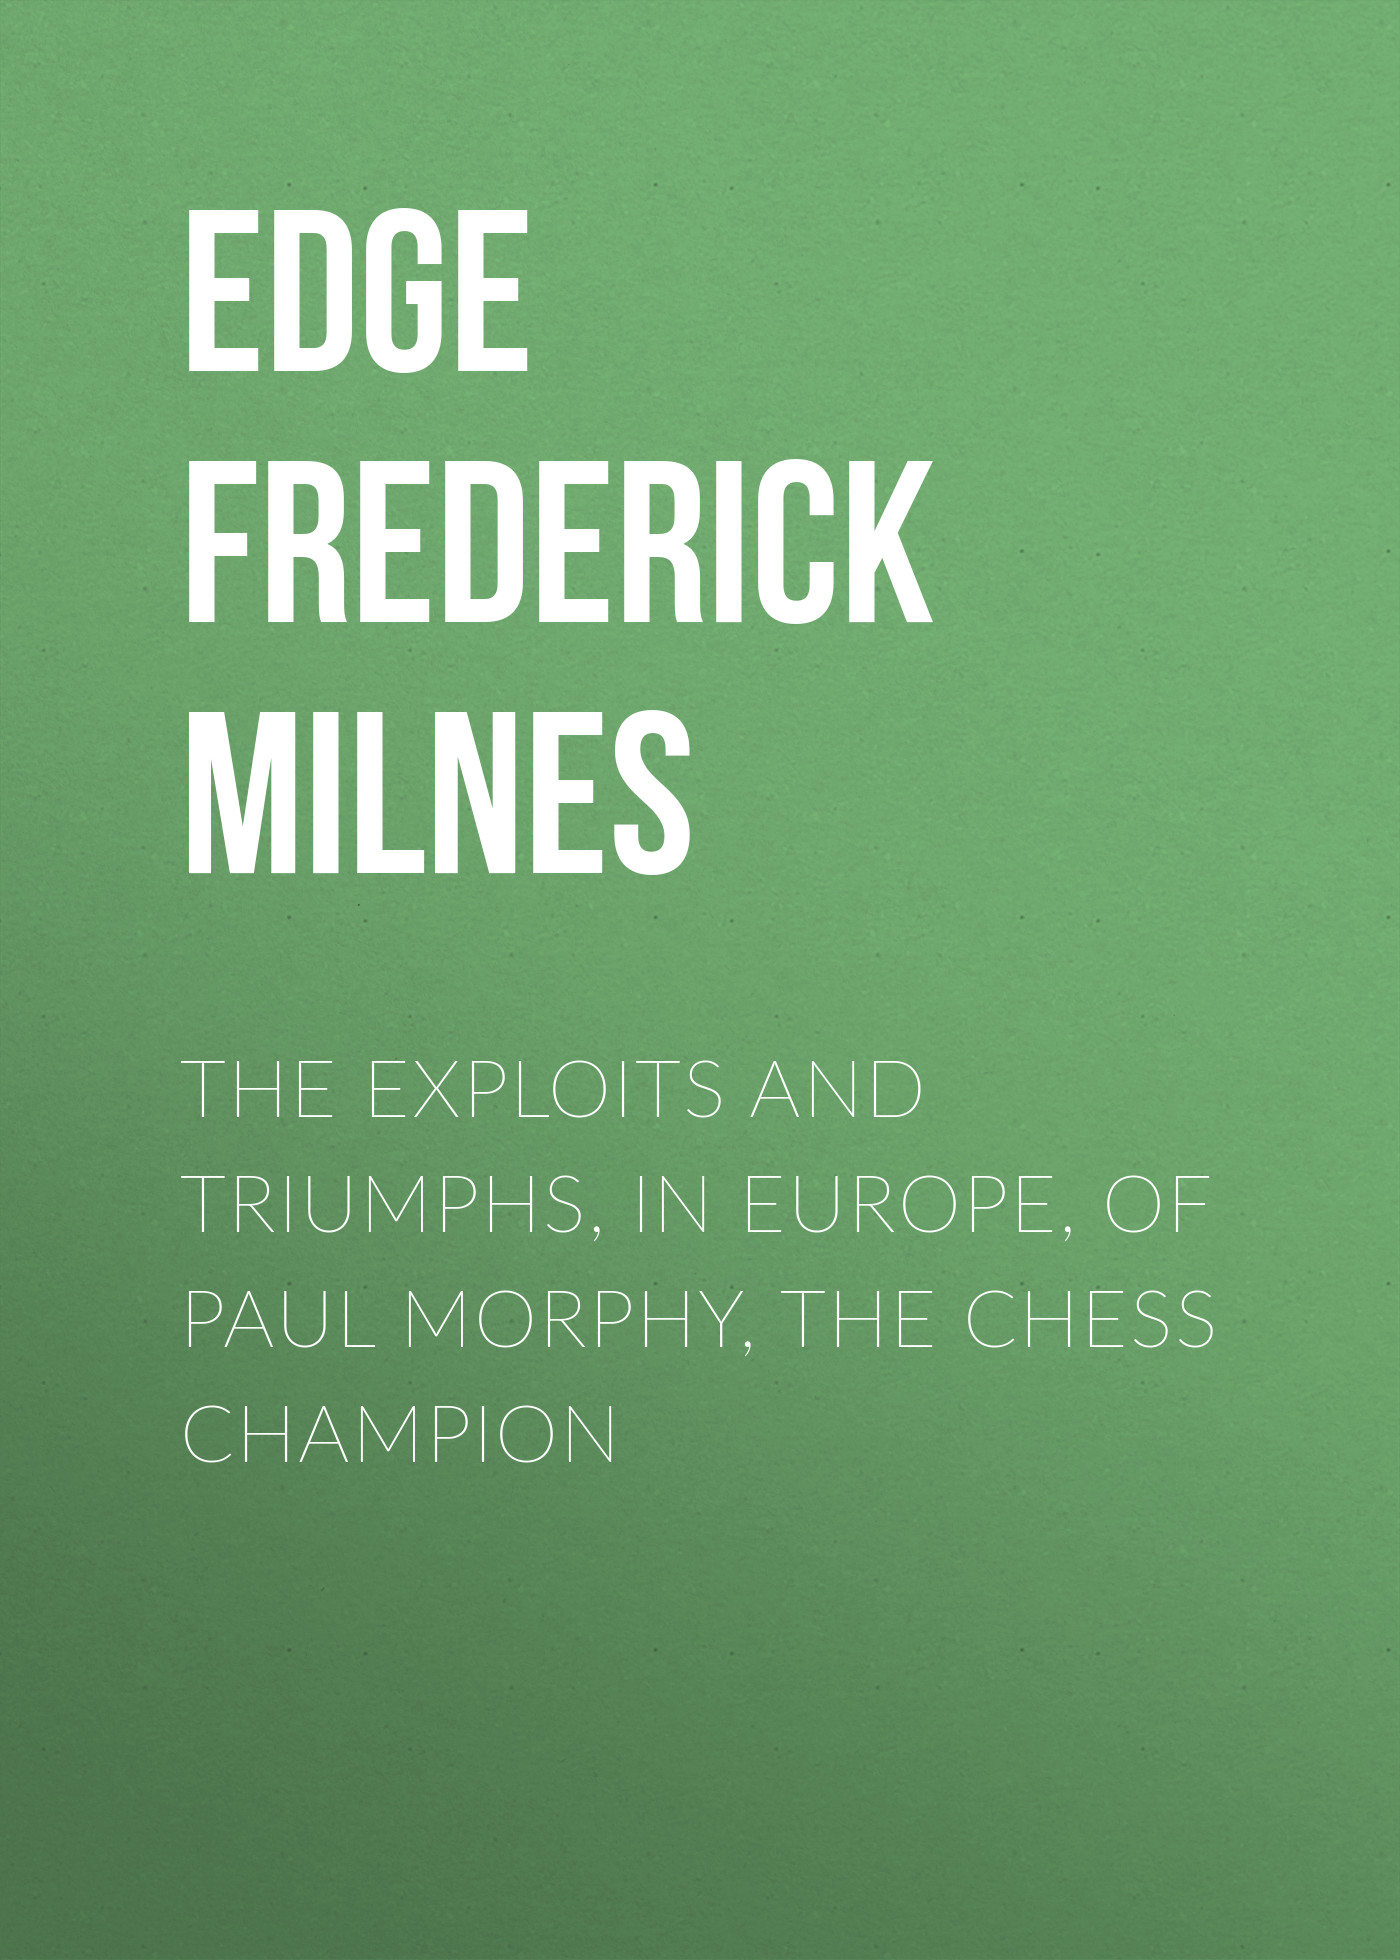 Edge Frederick Milnes The Exploits and Triumphs, in Europe, of Paul Morphy, the Chess Champion gerstaecker frederick wild sports in the far west